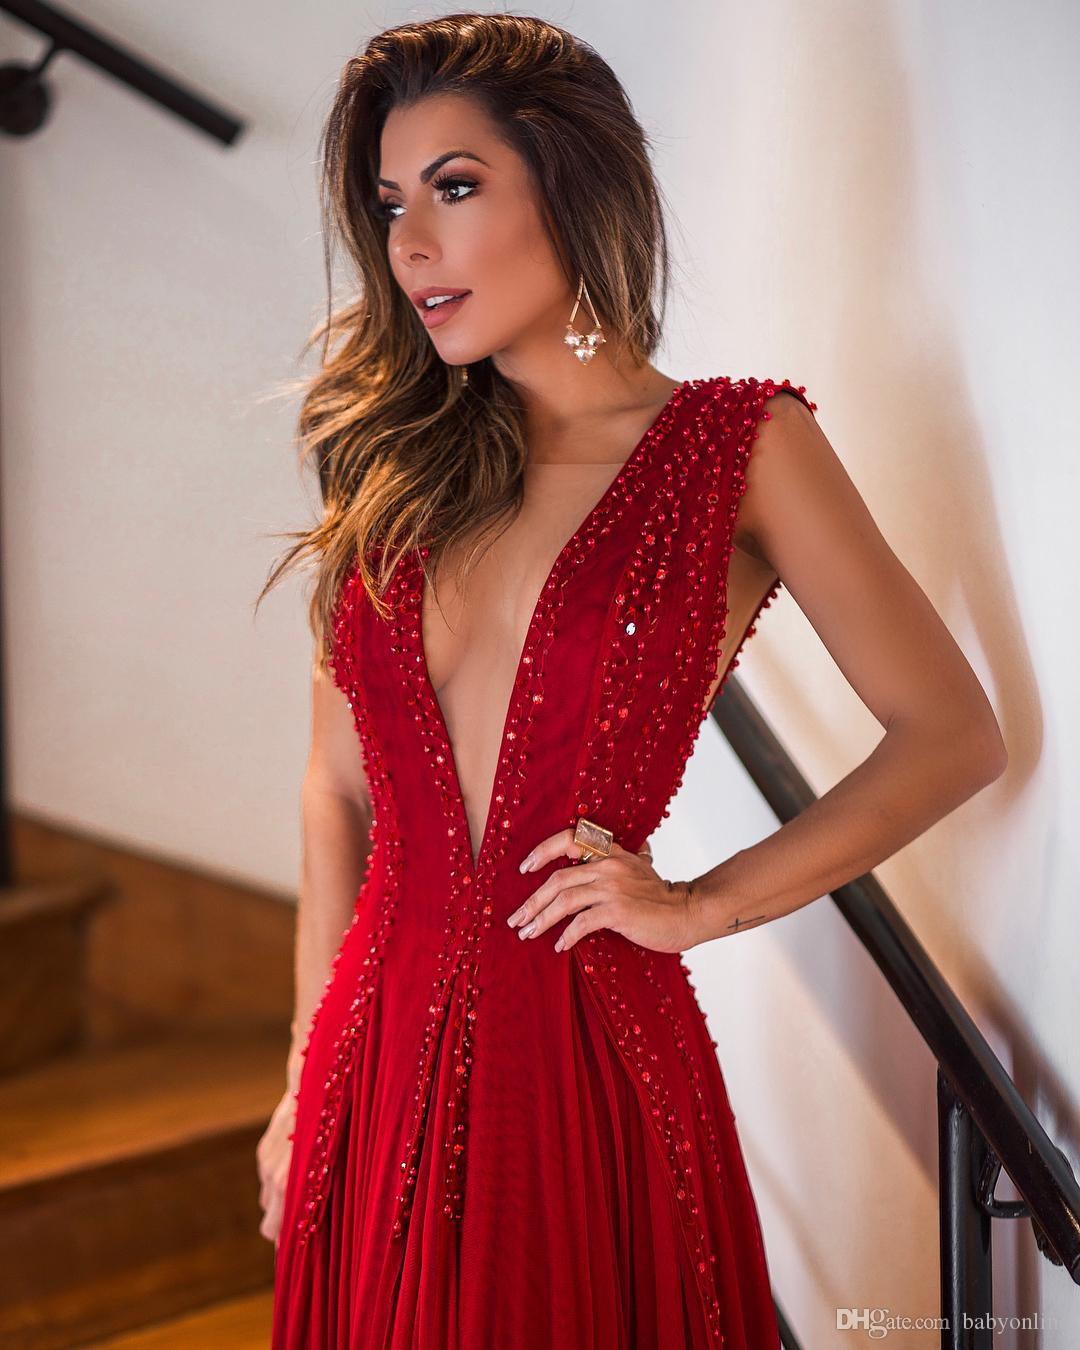 Red 2018 Evening Dresses Sexy Plunging V Neck Pleats Sequins Beads Fitted Long Formal Vestidos de festa Party Prom Gowns Celebrity Wears